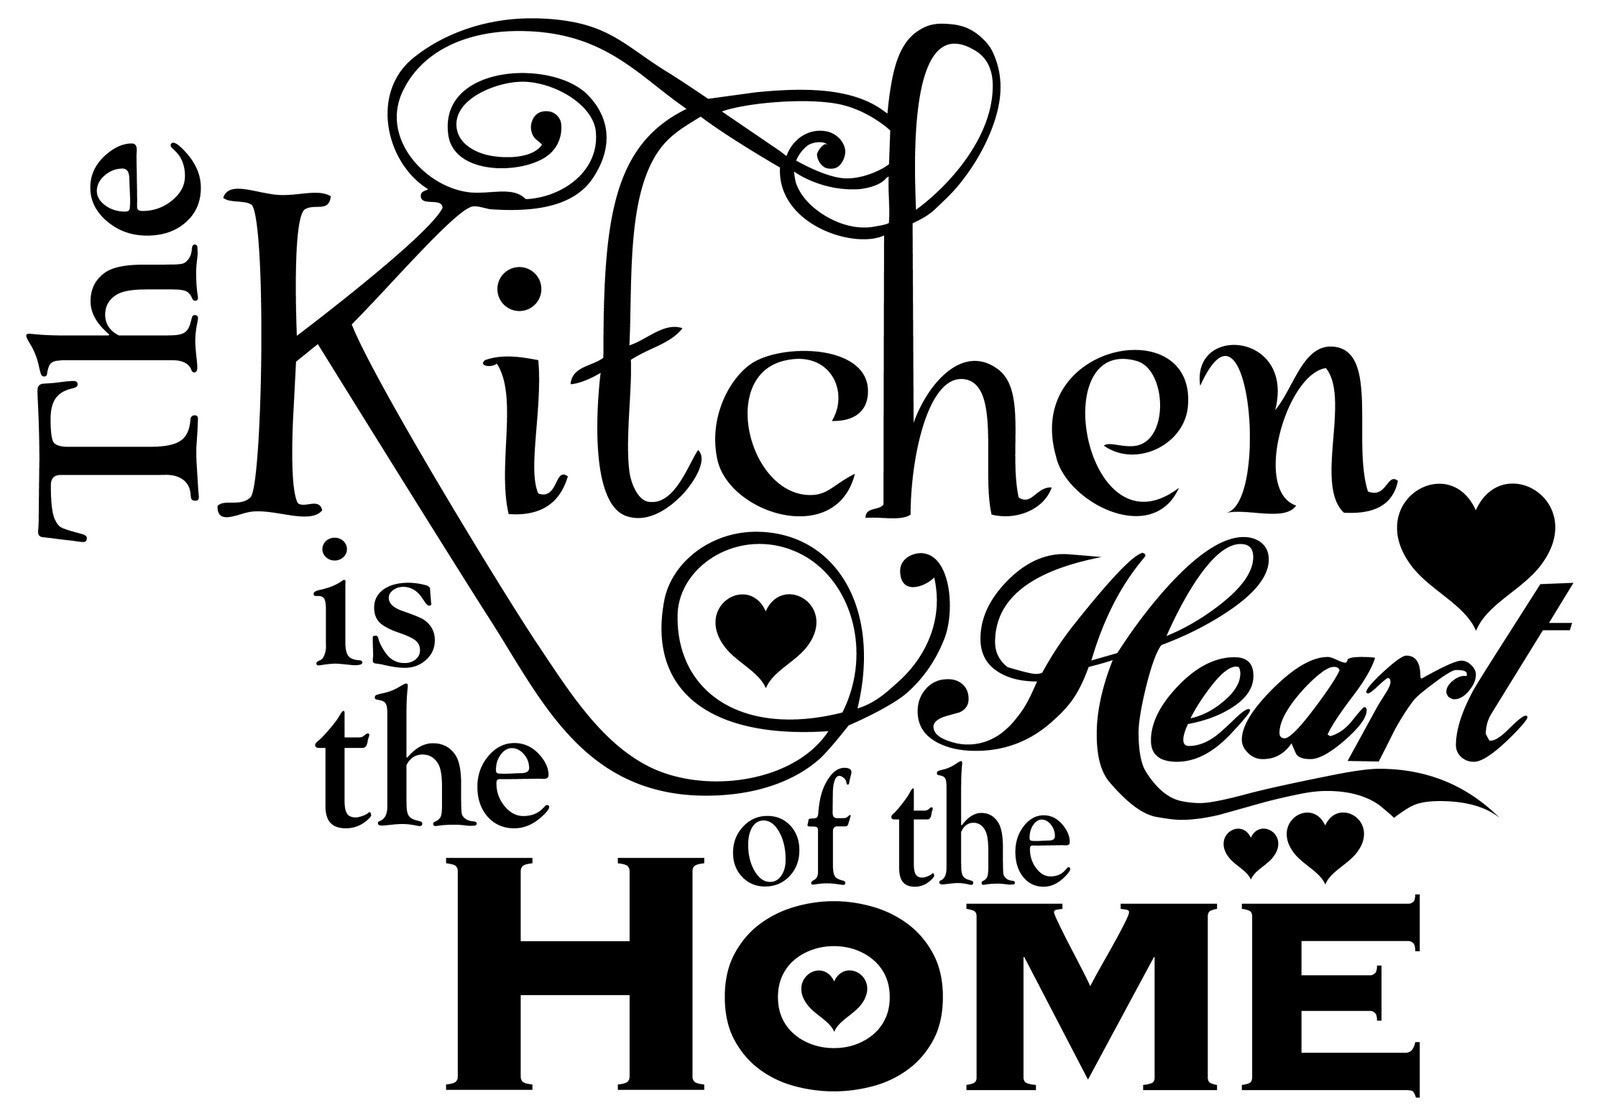 wall vinyl modern home decor sticker decal kitchen is the heart of the home kitchen quotes on kitchen decor quotes wall decals id=30609